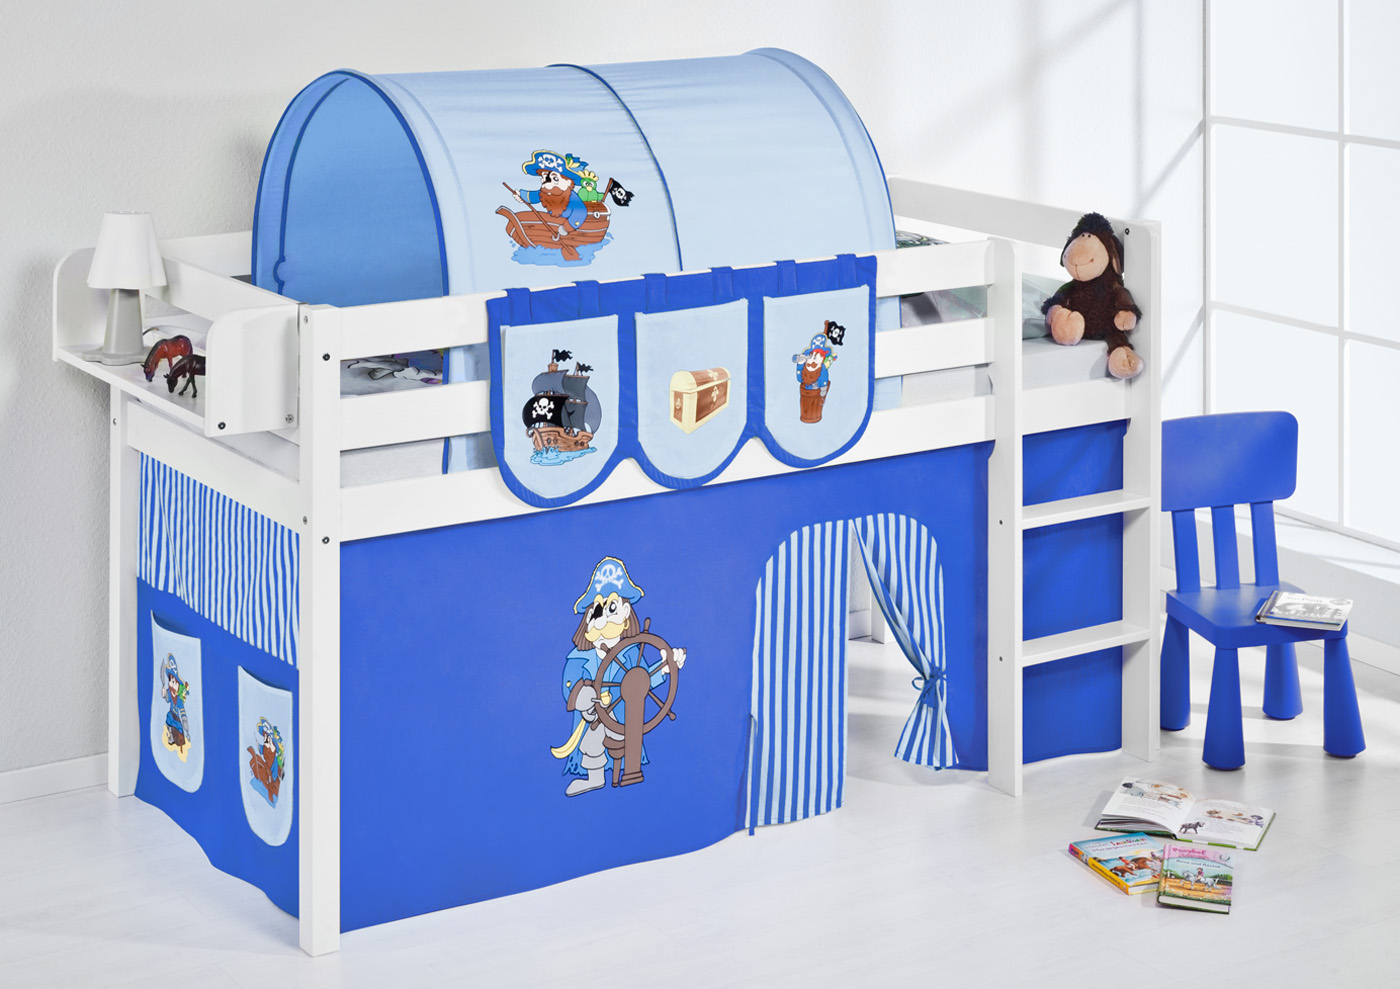 spielbett hochbett kinderbett kinder bett jelle 190x90 cm vorhang nach wahl ebay. Black Bedroom Furniture Sets. Home Design Ideas